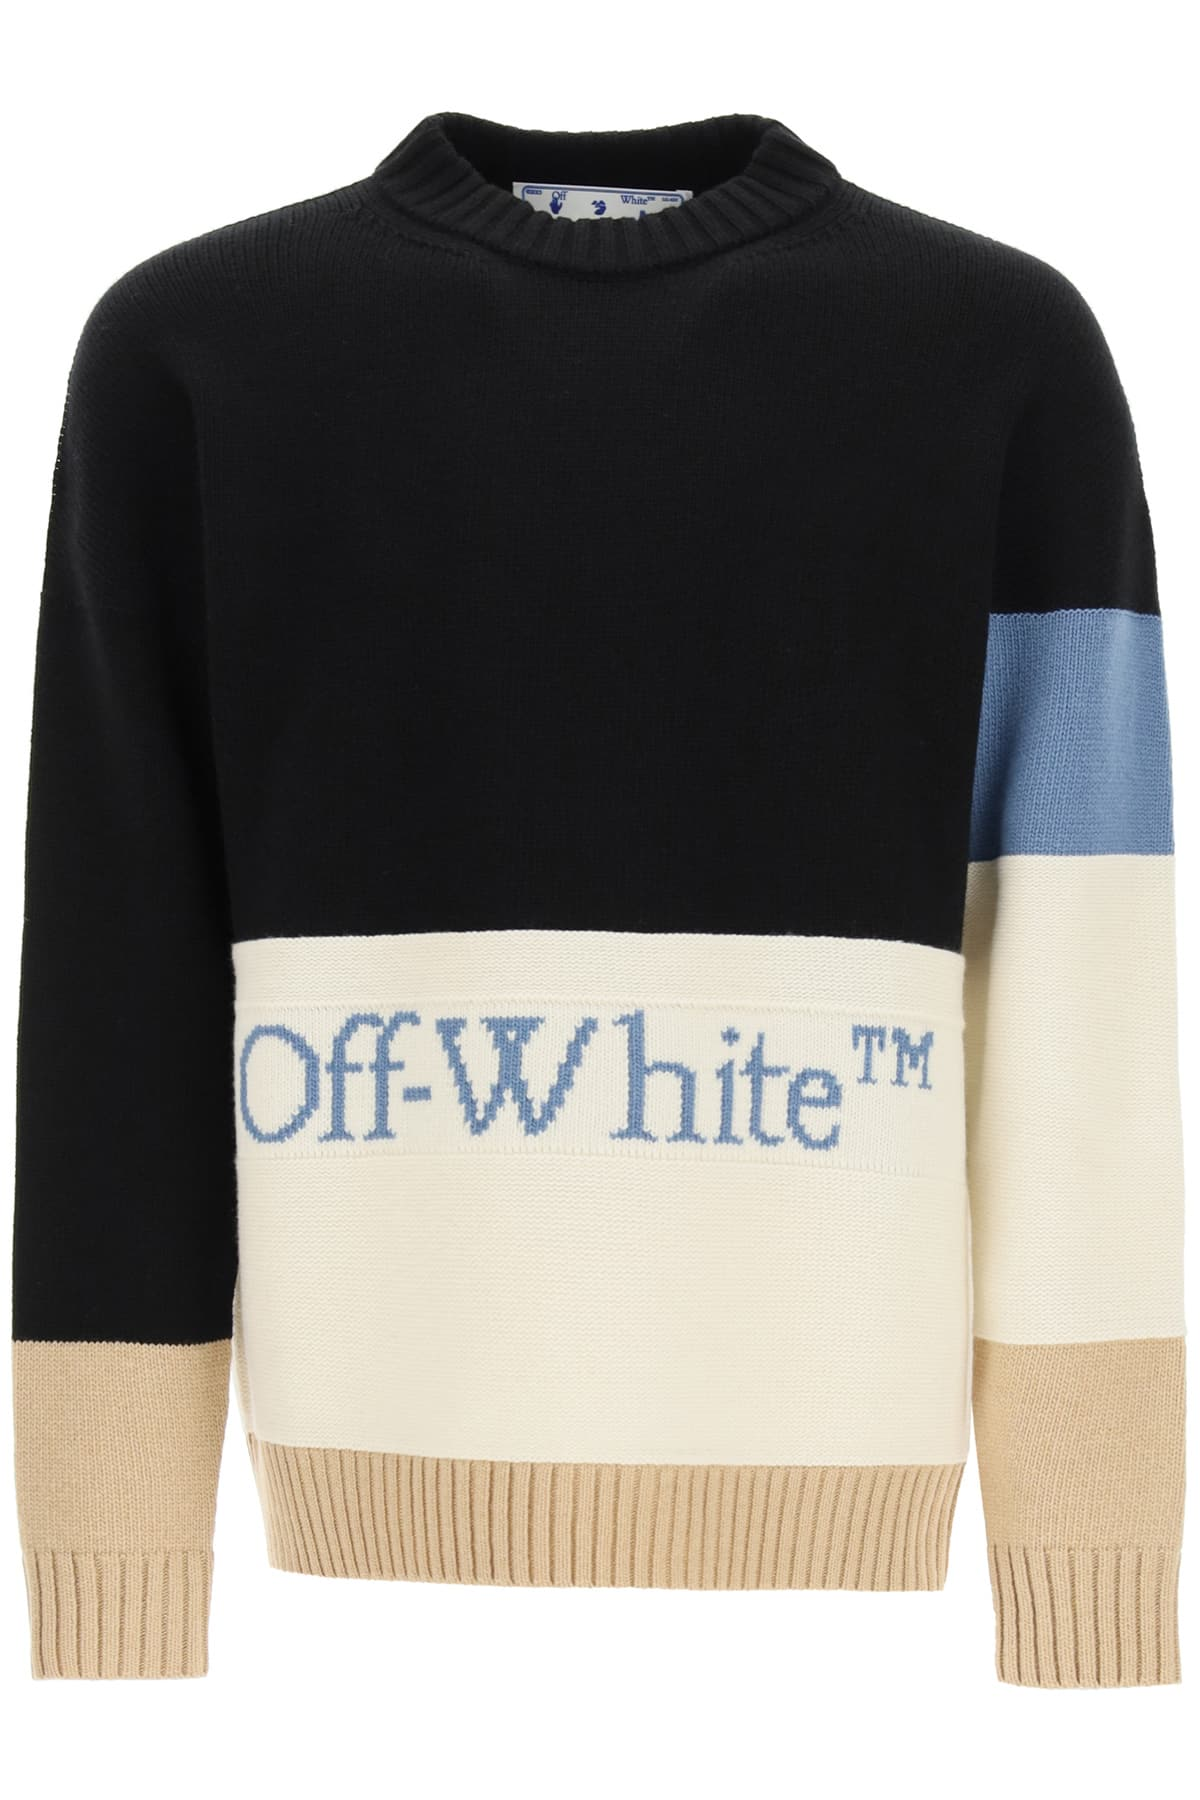 OFF-WHITE COLOR BLOCK SWEATER WITH LOGO S Blue, White, Beige Wool